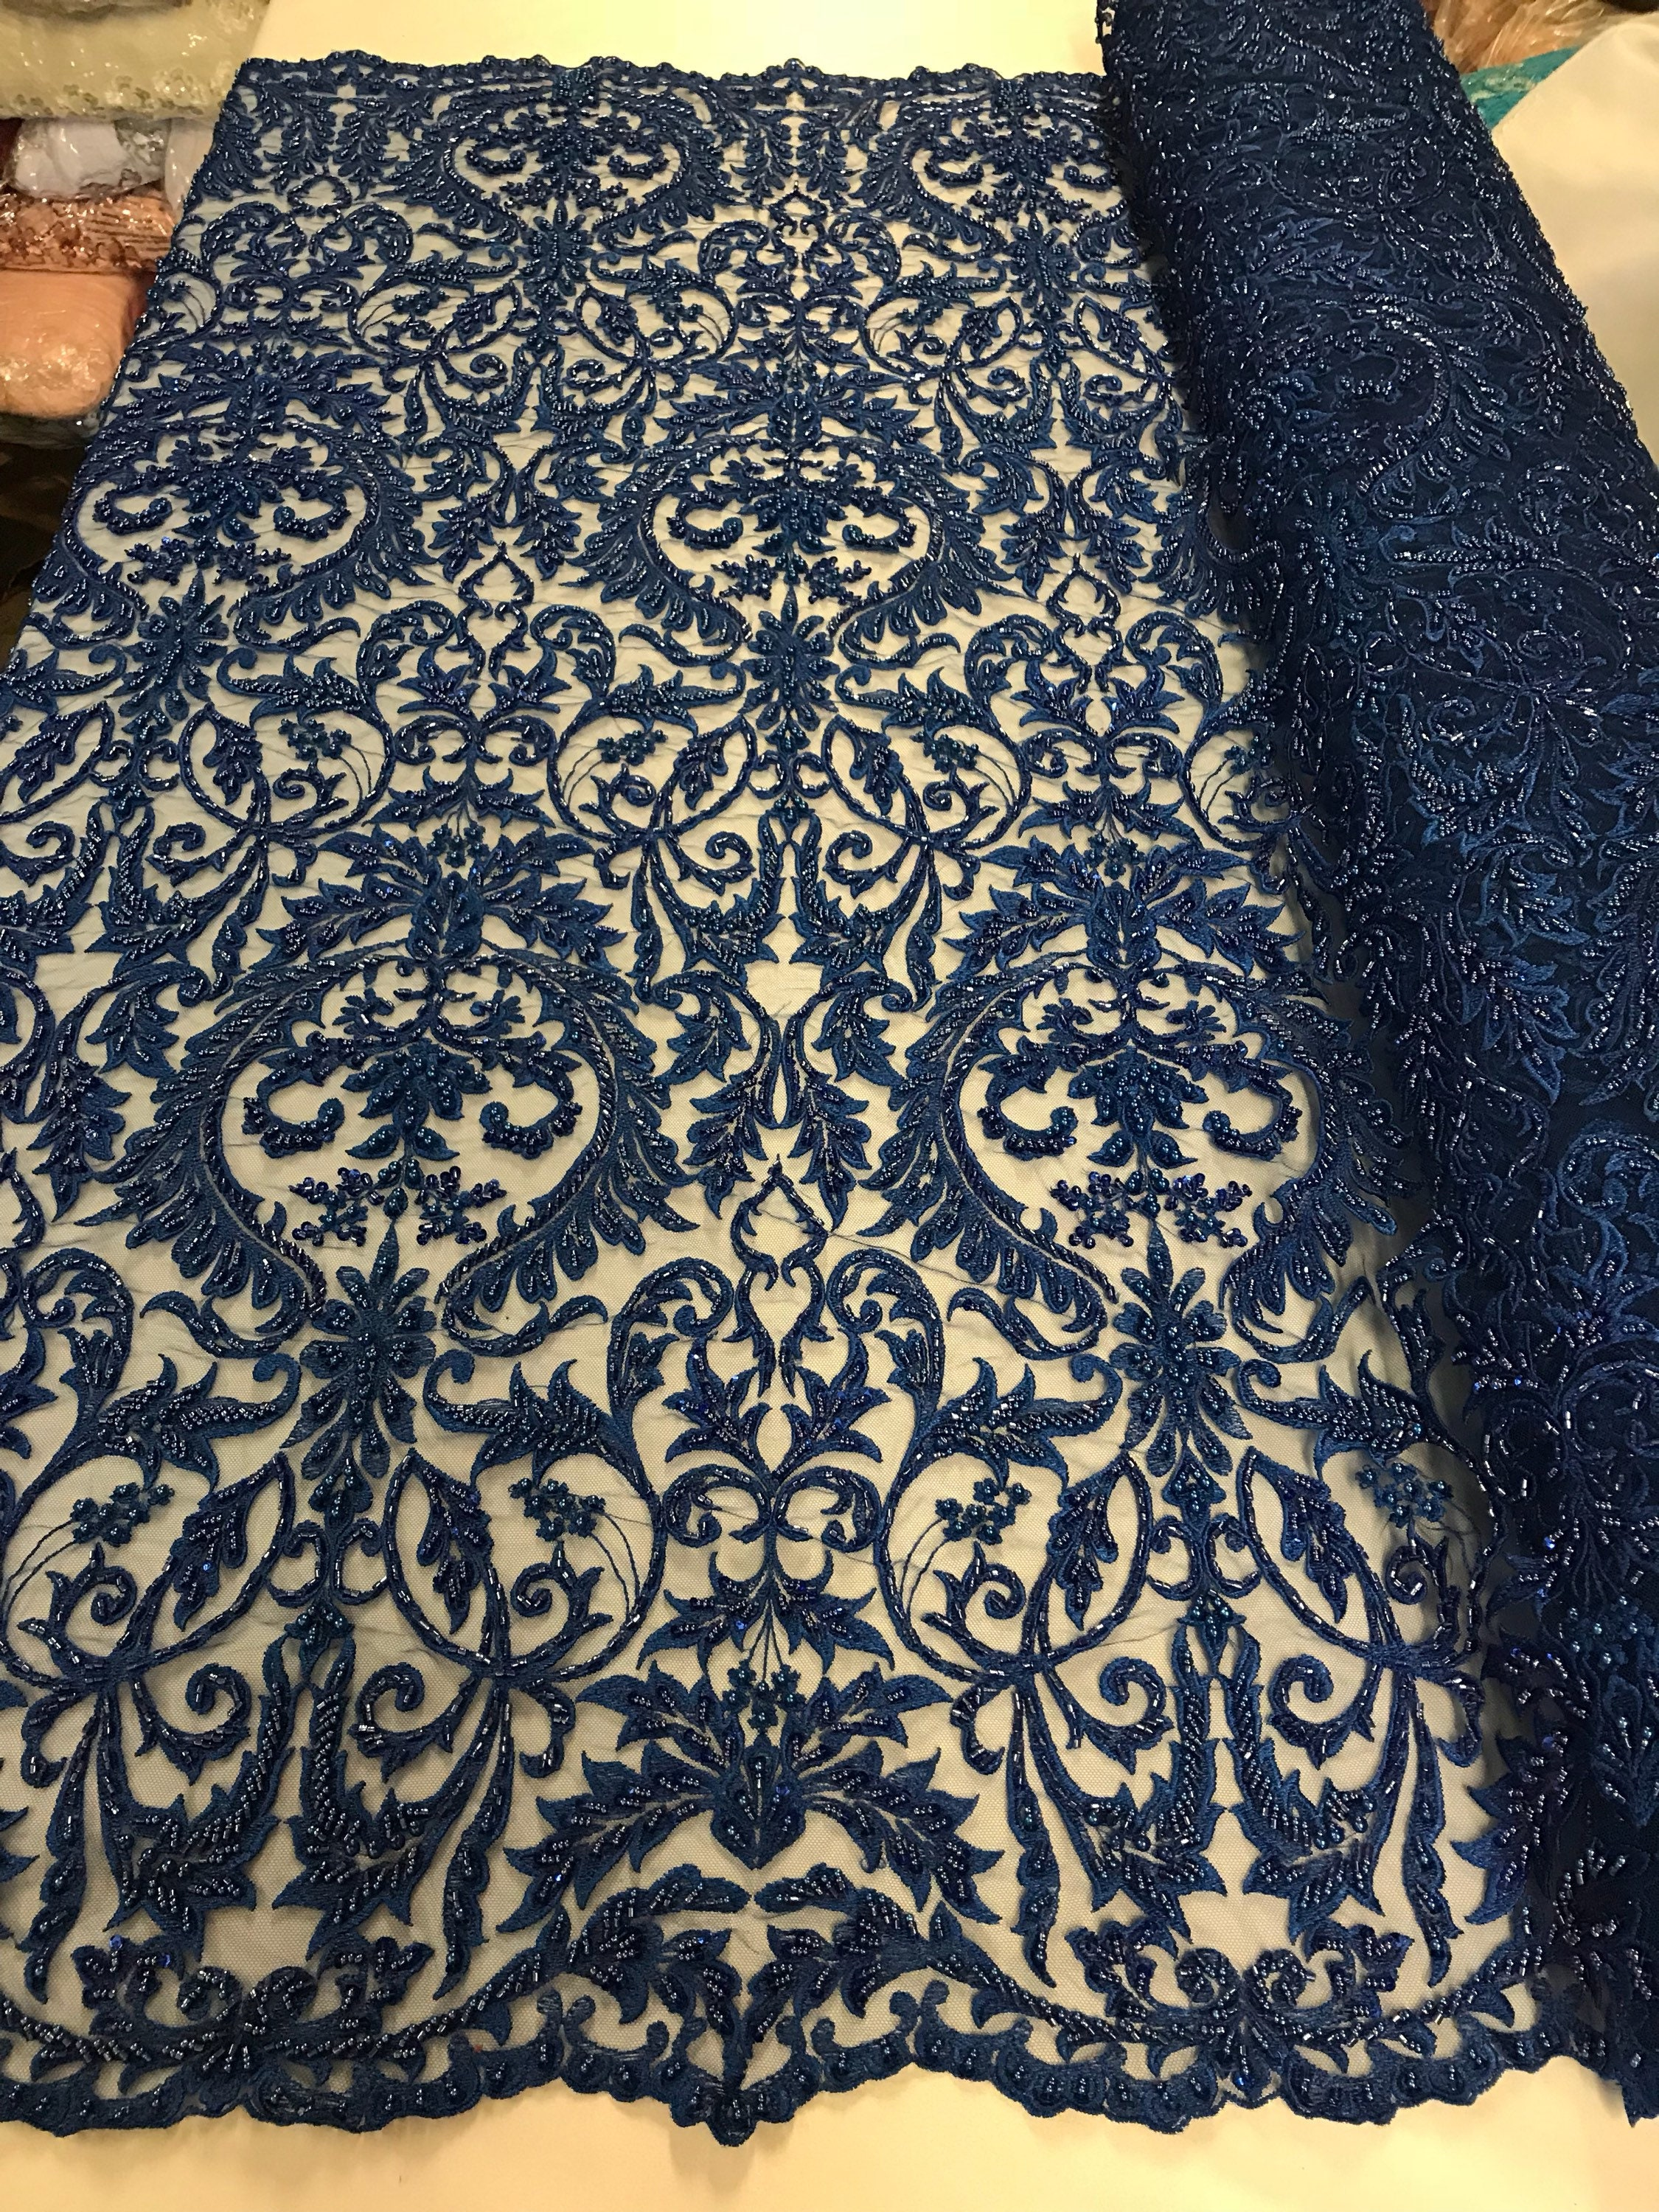 Embroidered Beaded Mesh Bridal Veil R-Blue Wedding By The Yard Fabric Lace